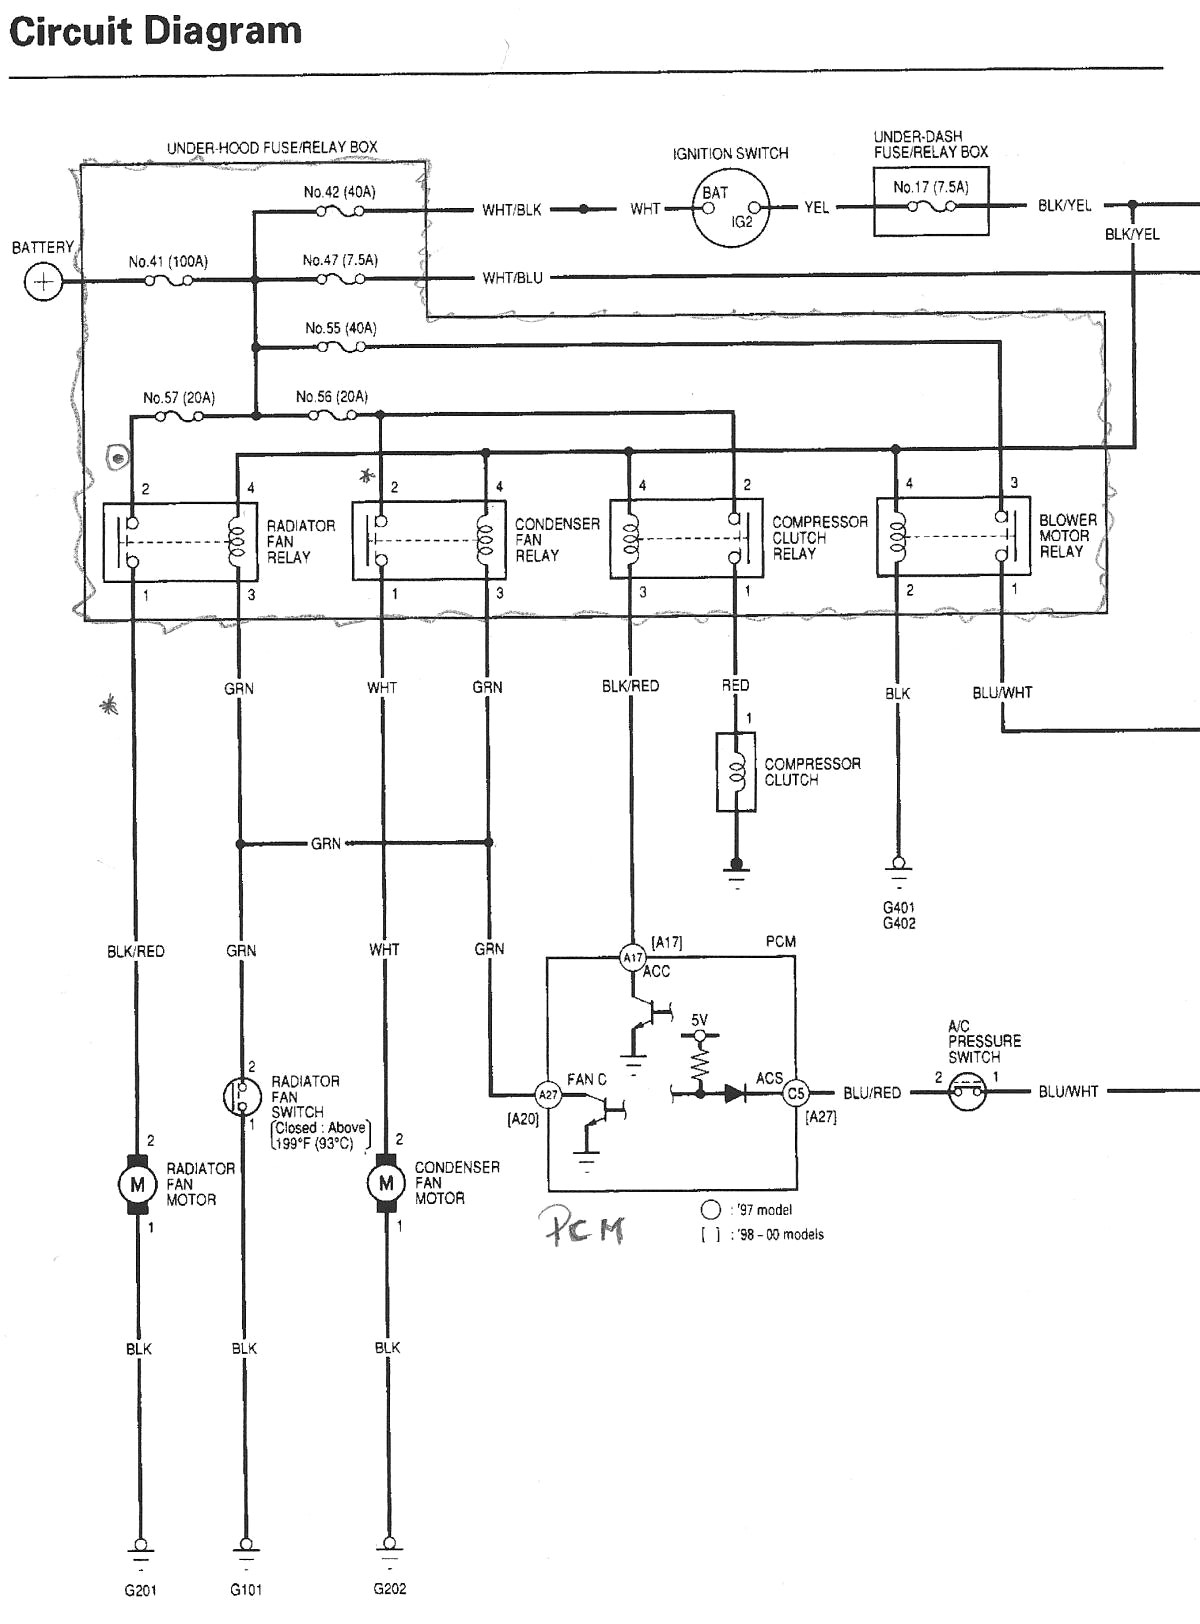 99 honda accord engine diagram my wiring diagram rh detoxicrecenze com 99 accord engine diagram 1999 honda accord lx engine diagram